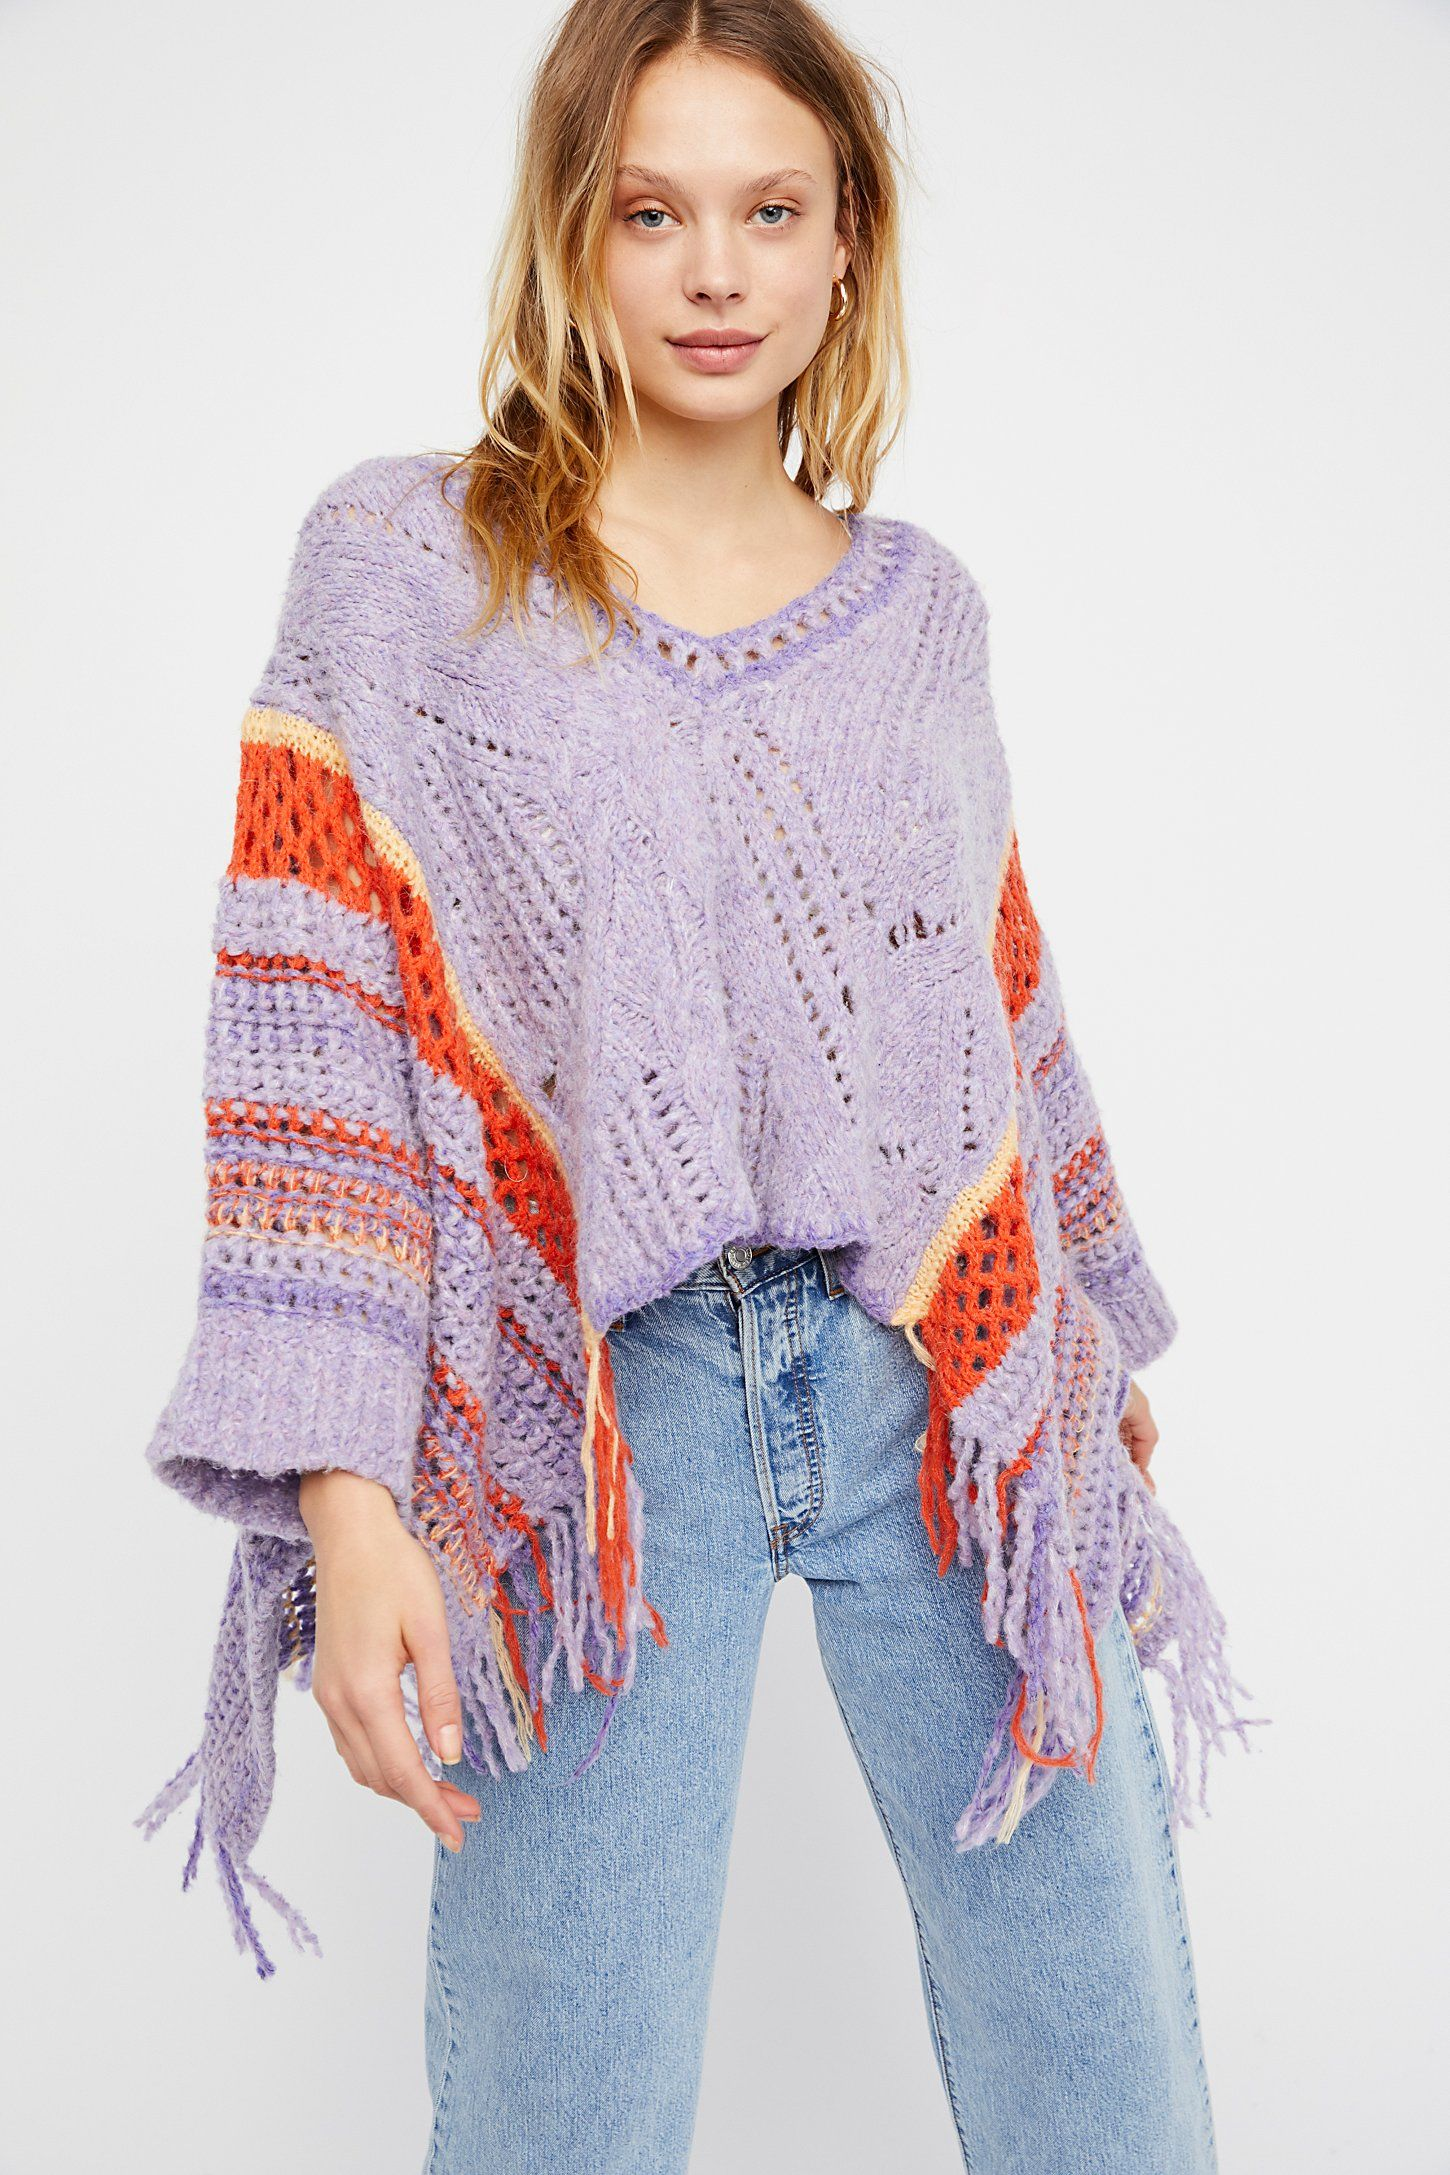 Shop our Hidden Valley Poncho at FreePeople.com. Share style pics ...